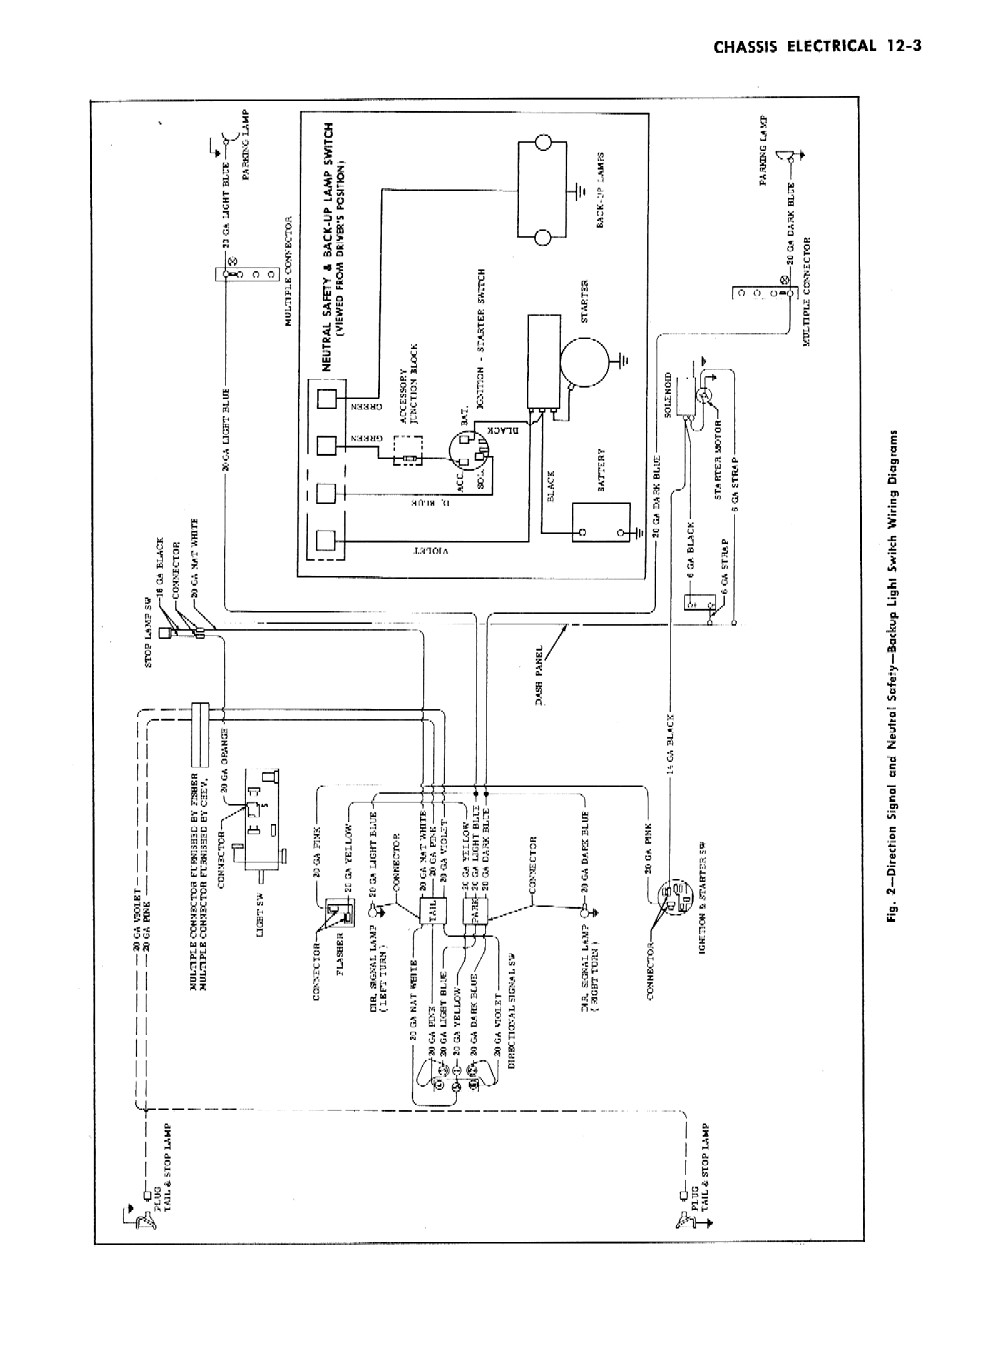 wiring diagram 1956 chevrolet nomad